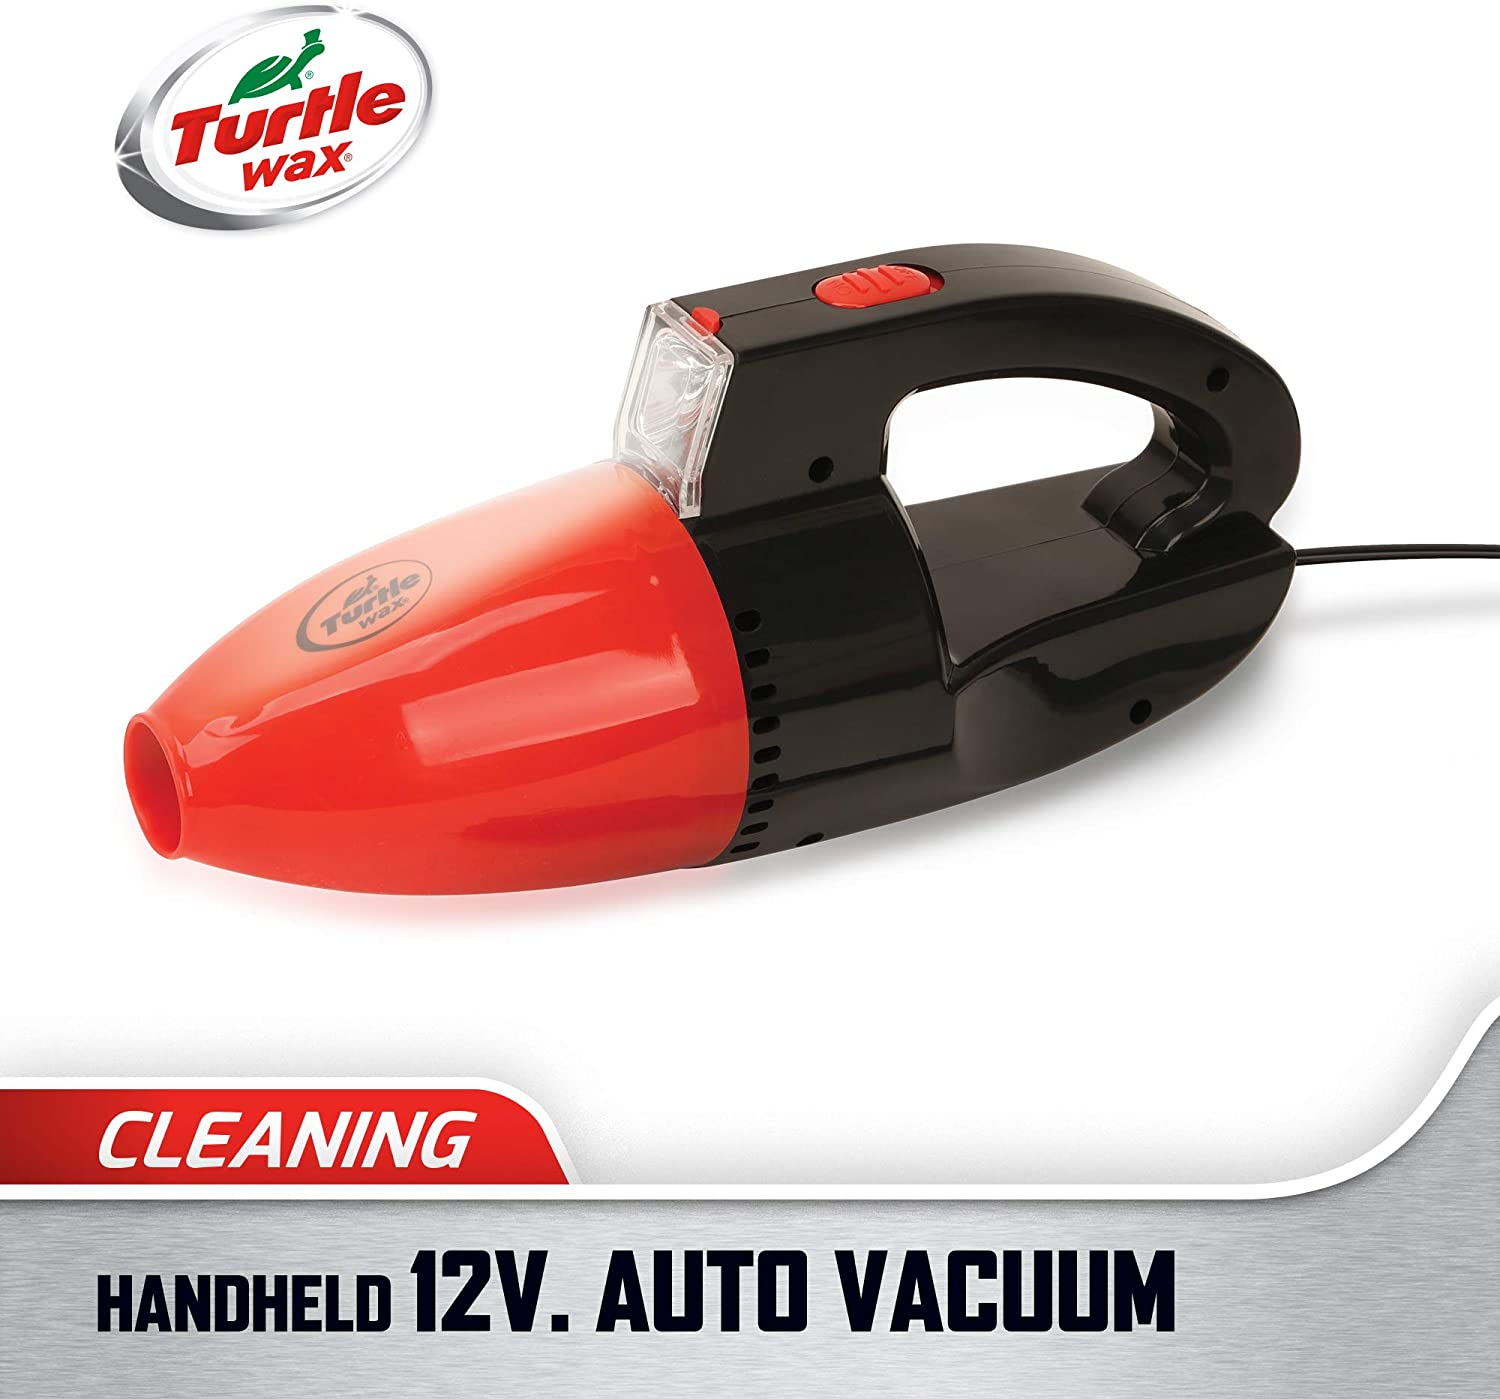 Turtle Wax Handheld Auto Vacuum Cleaner with LED Light, DC 12V (Vehicle Use Only), Red/Black